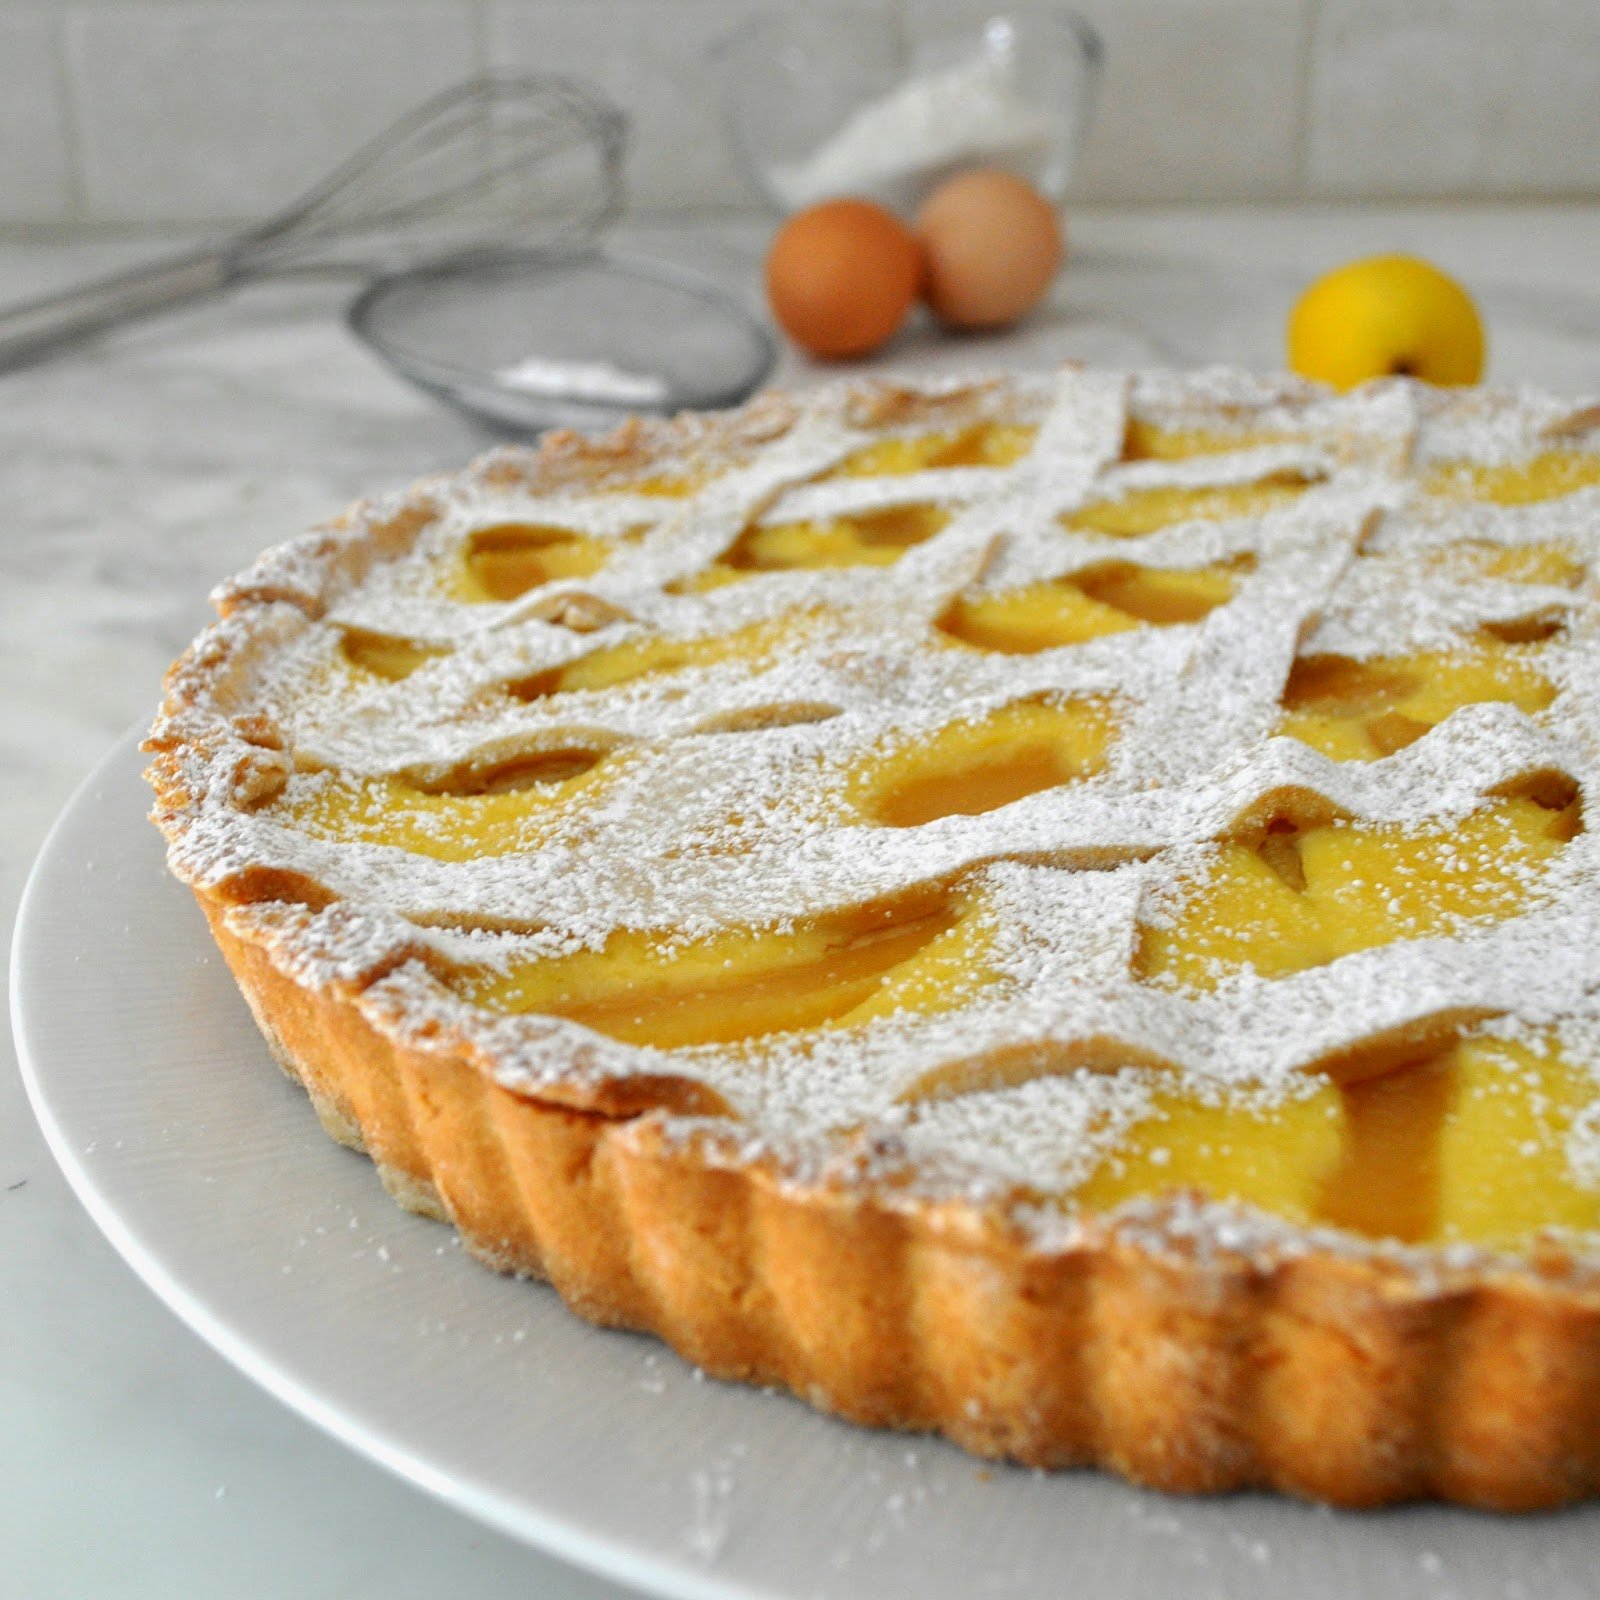 ... moist ricotta and pear filling, over a crumbly, sweet and lemony crust